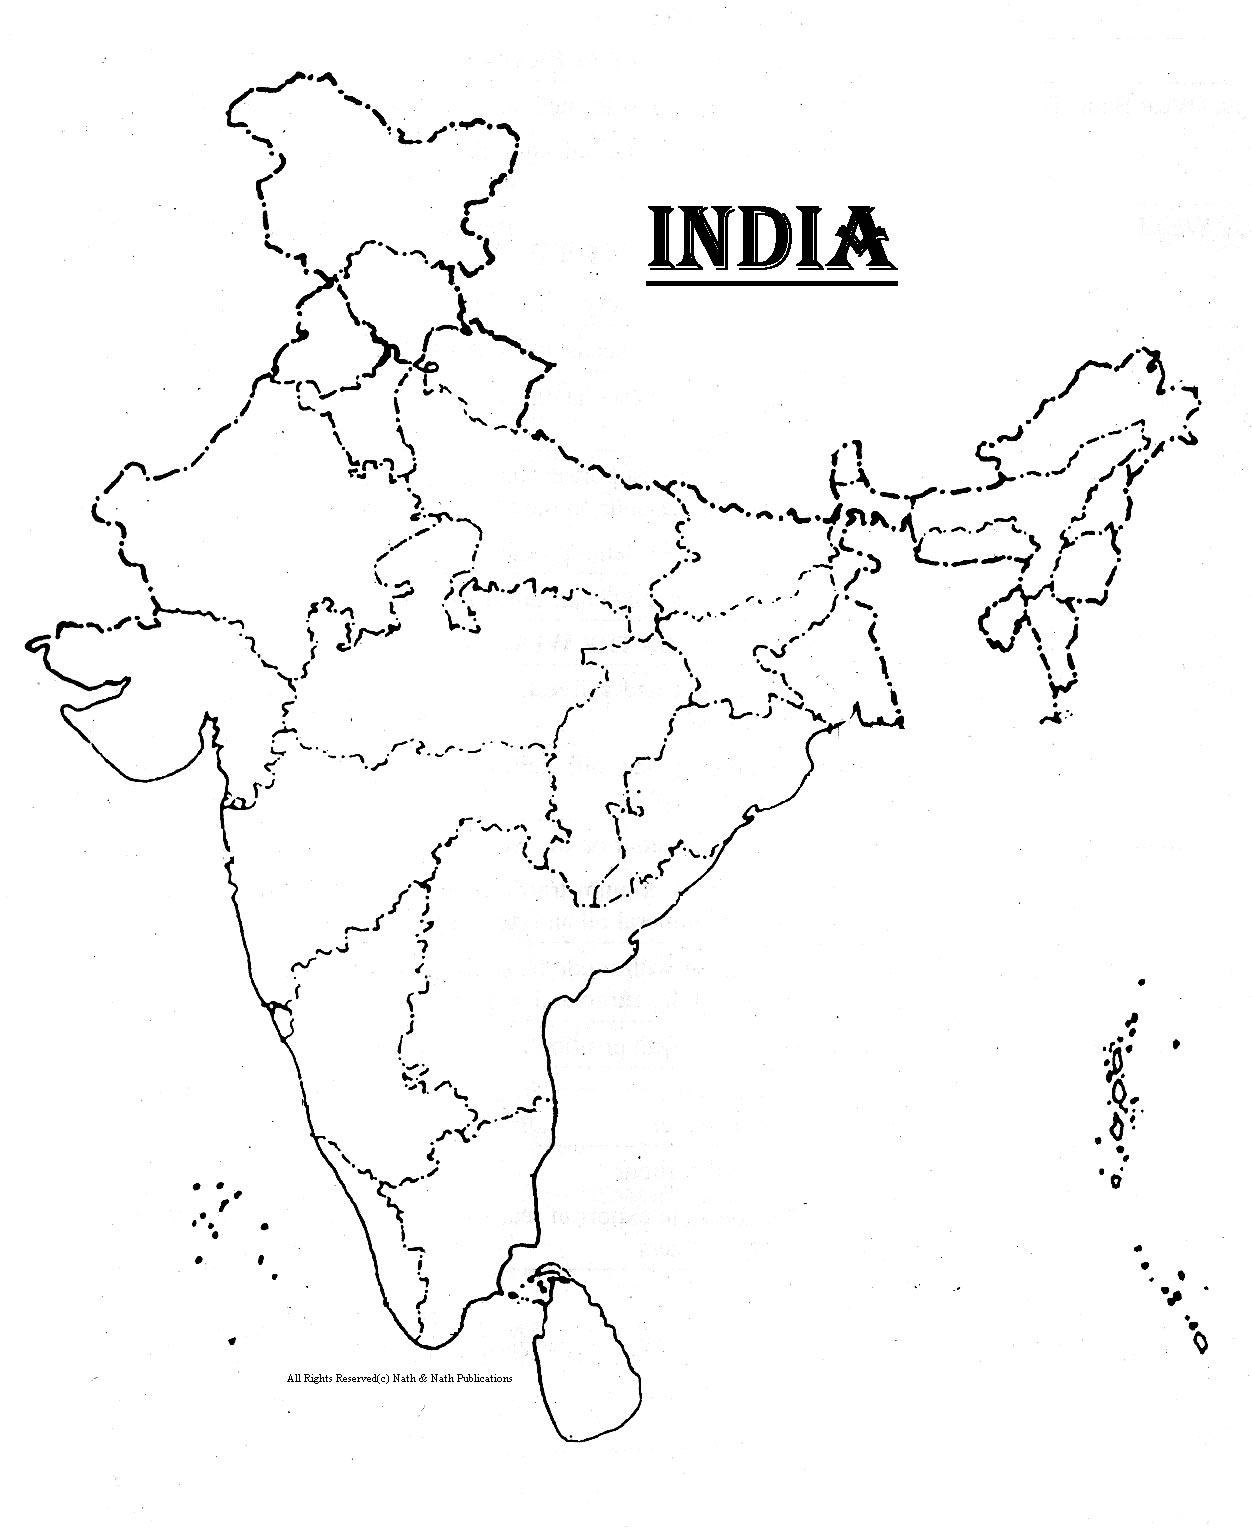 India Map Drawing at GetDrawings.com | Free for personal use India ...